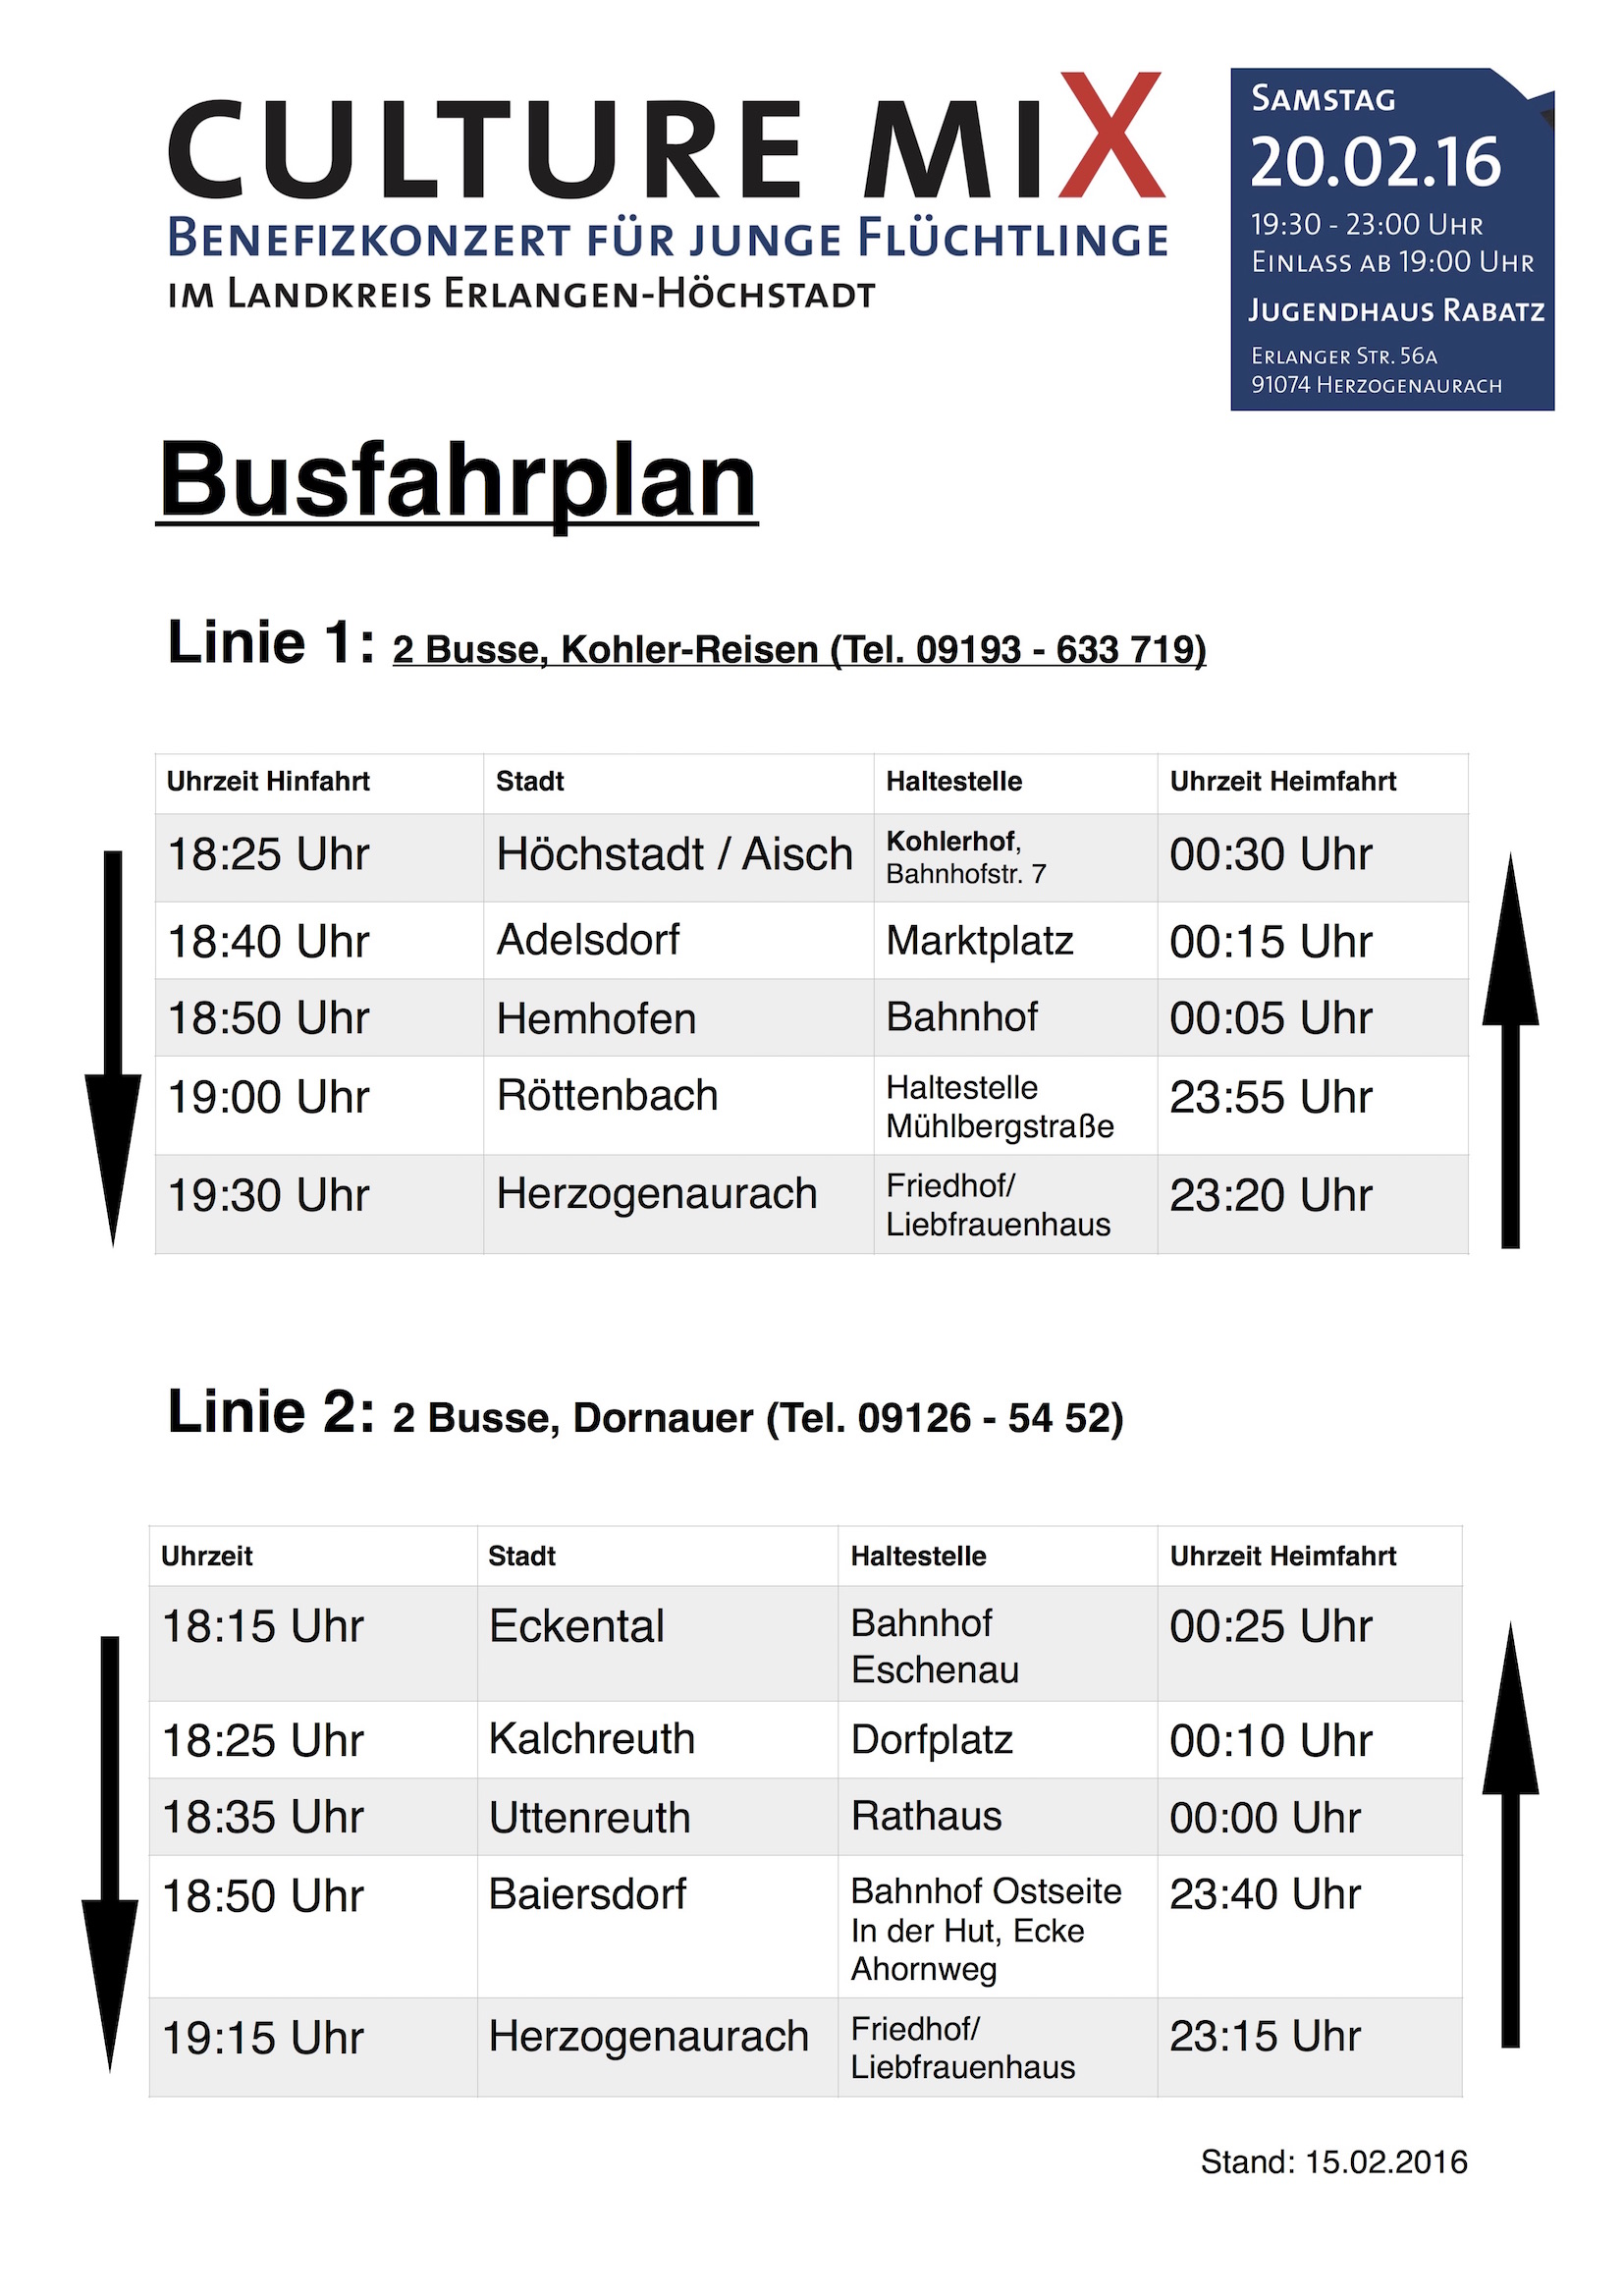 Busfahrplan Culture Mix